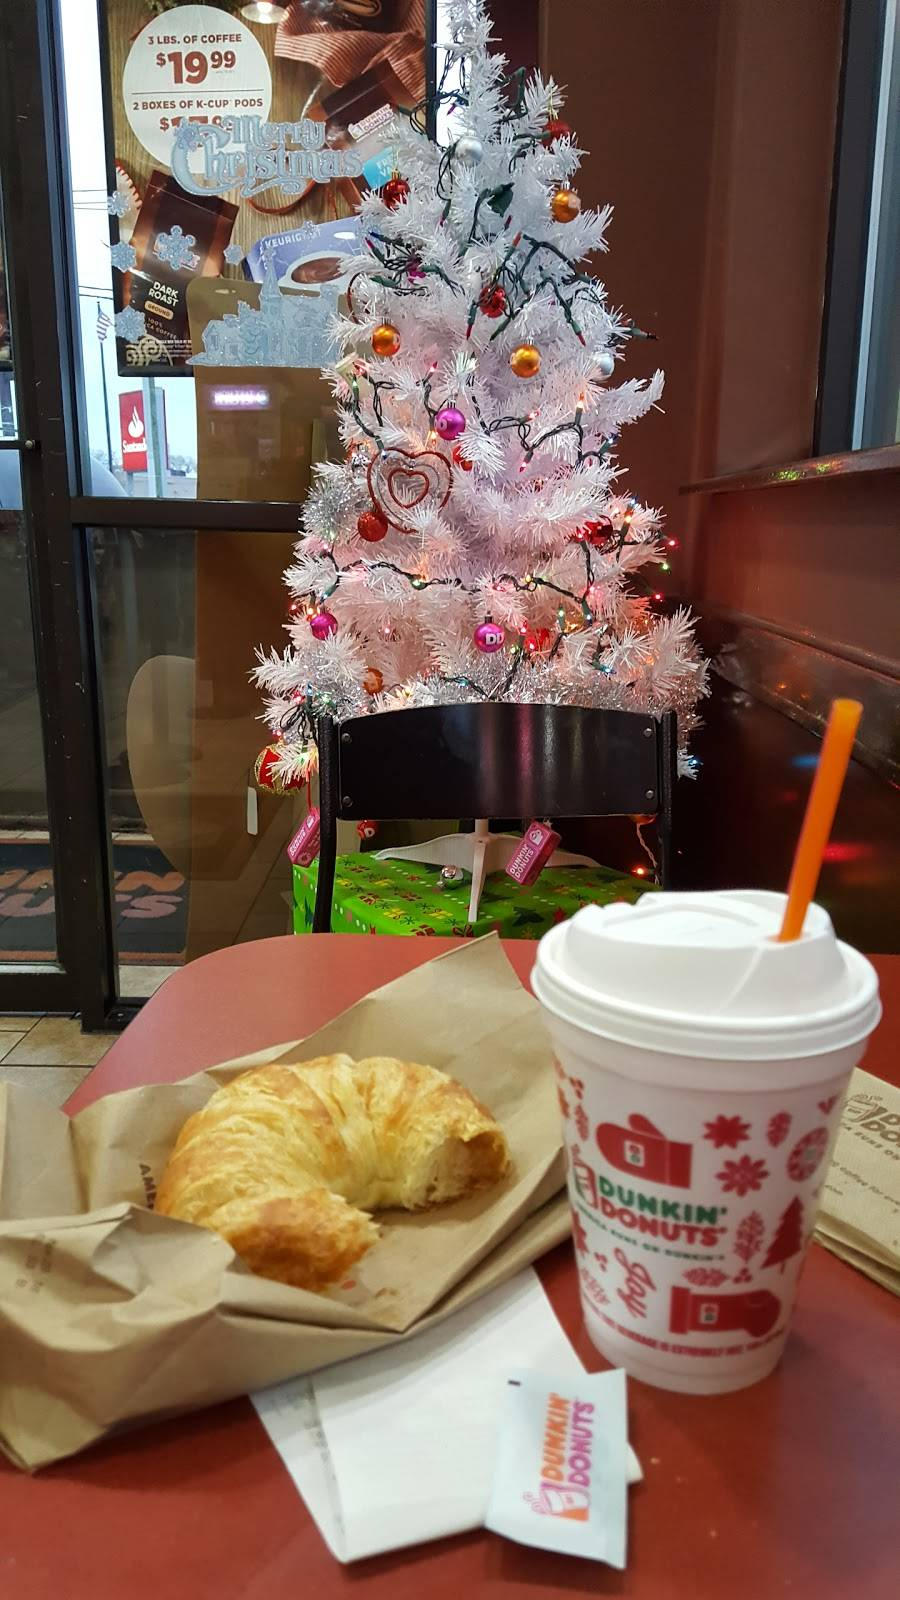 Dunkin Donuts | cafe | 1351 Paterson Plank Rd, Secaucus, NJ 07094, USA | 2016055555 OR +1 201-605-5555